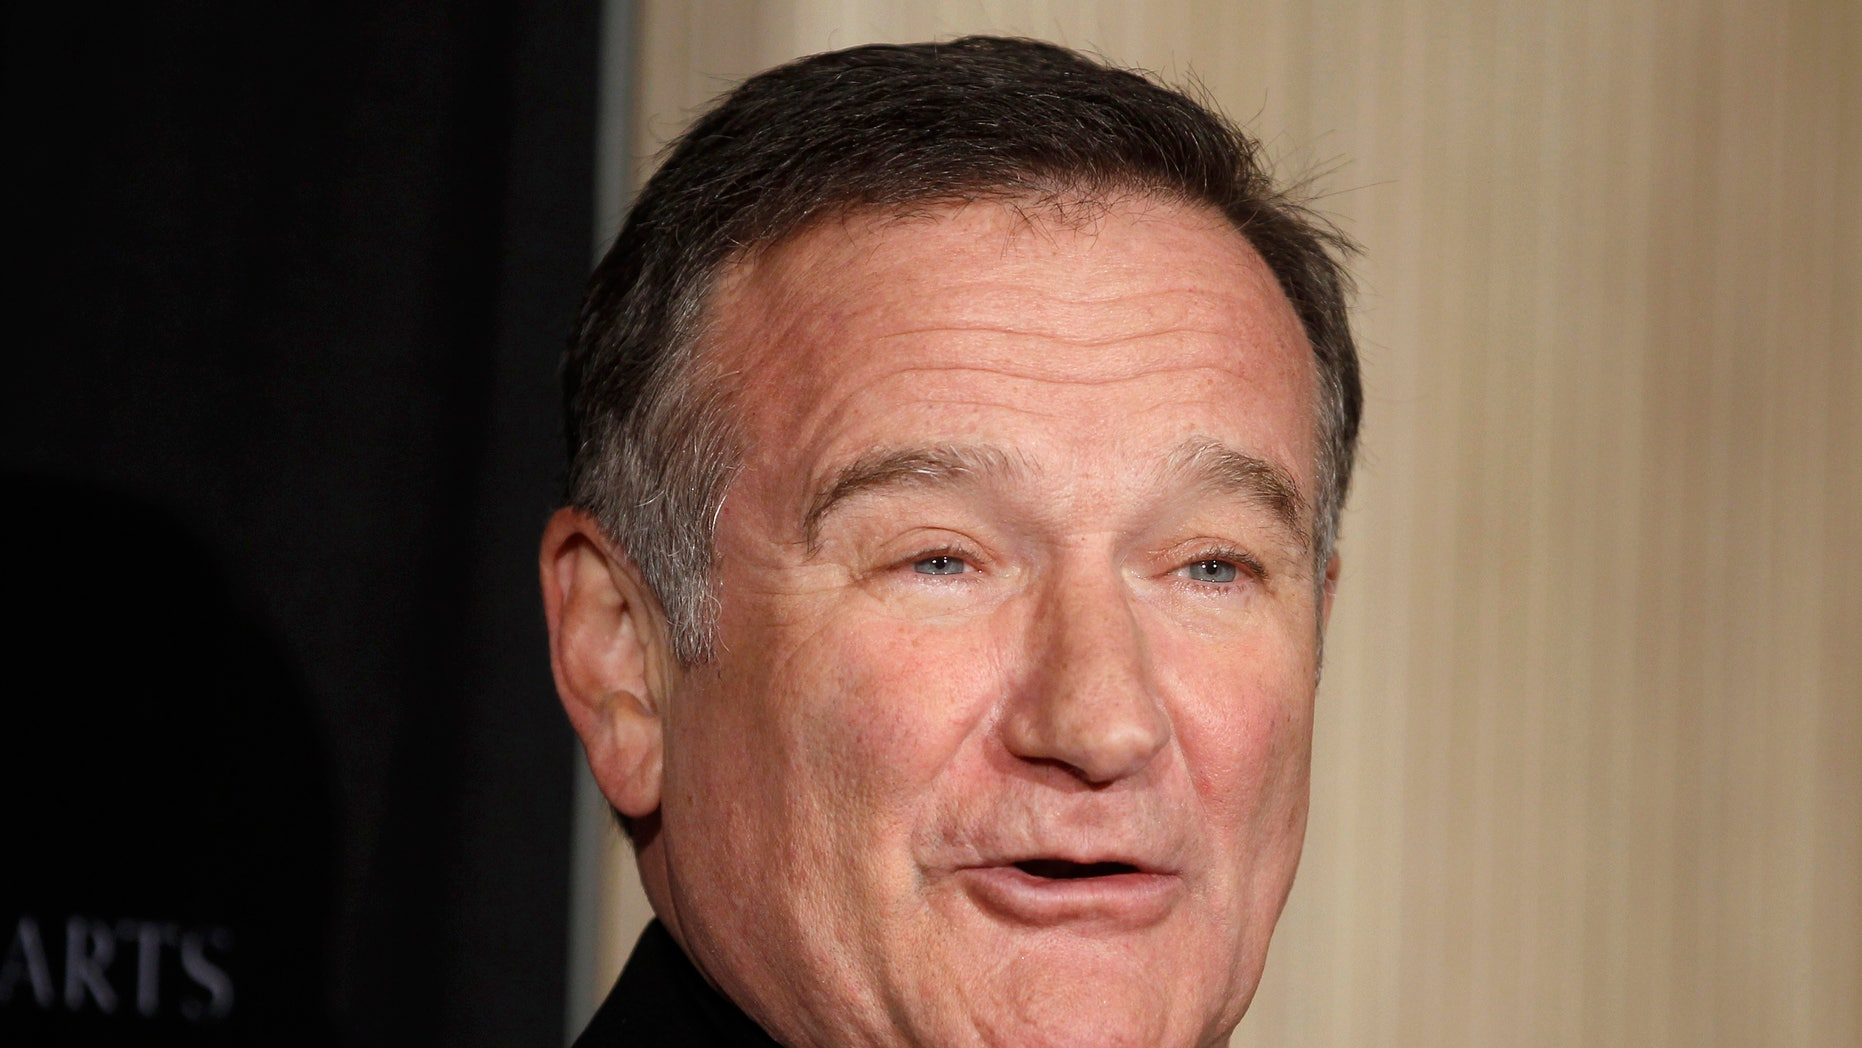 Actor Robin Williams poses as he arrives at the British Academy of Film and Television Arts Los Angeles Britannia Awards in Beverly Hills, California November 30, 2011.